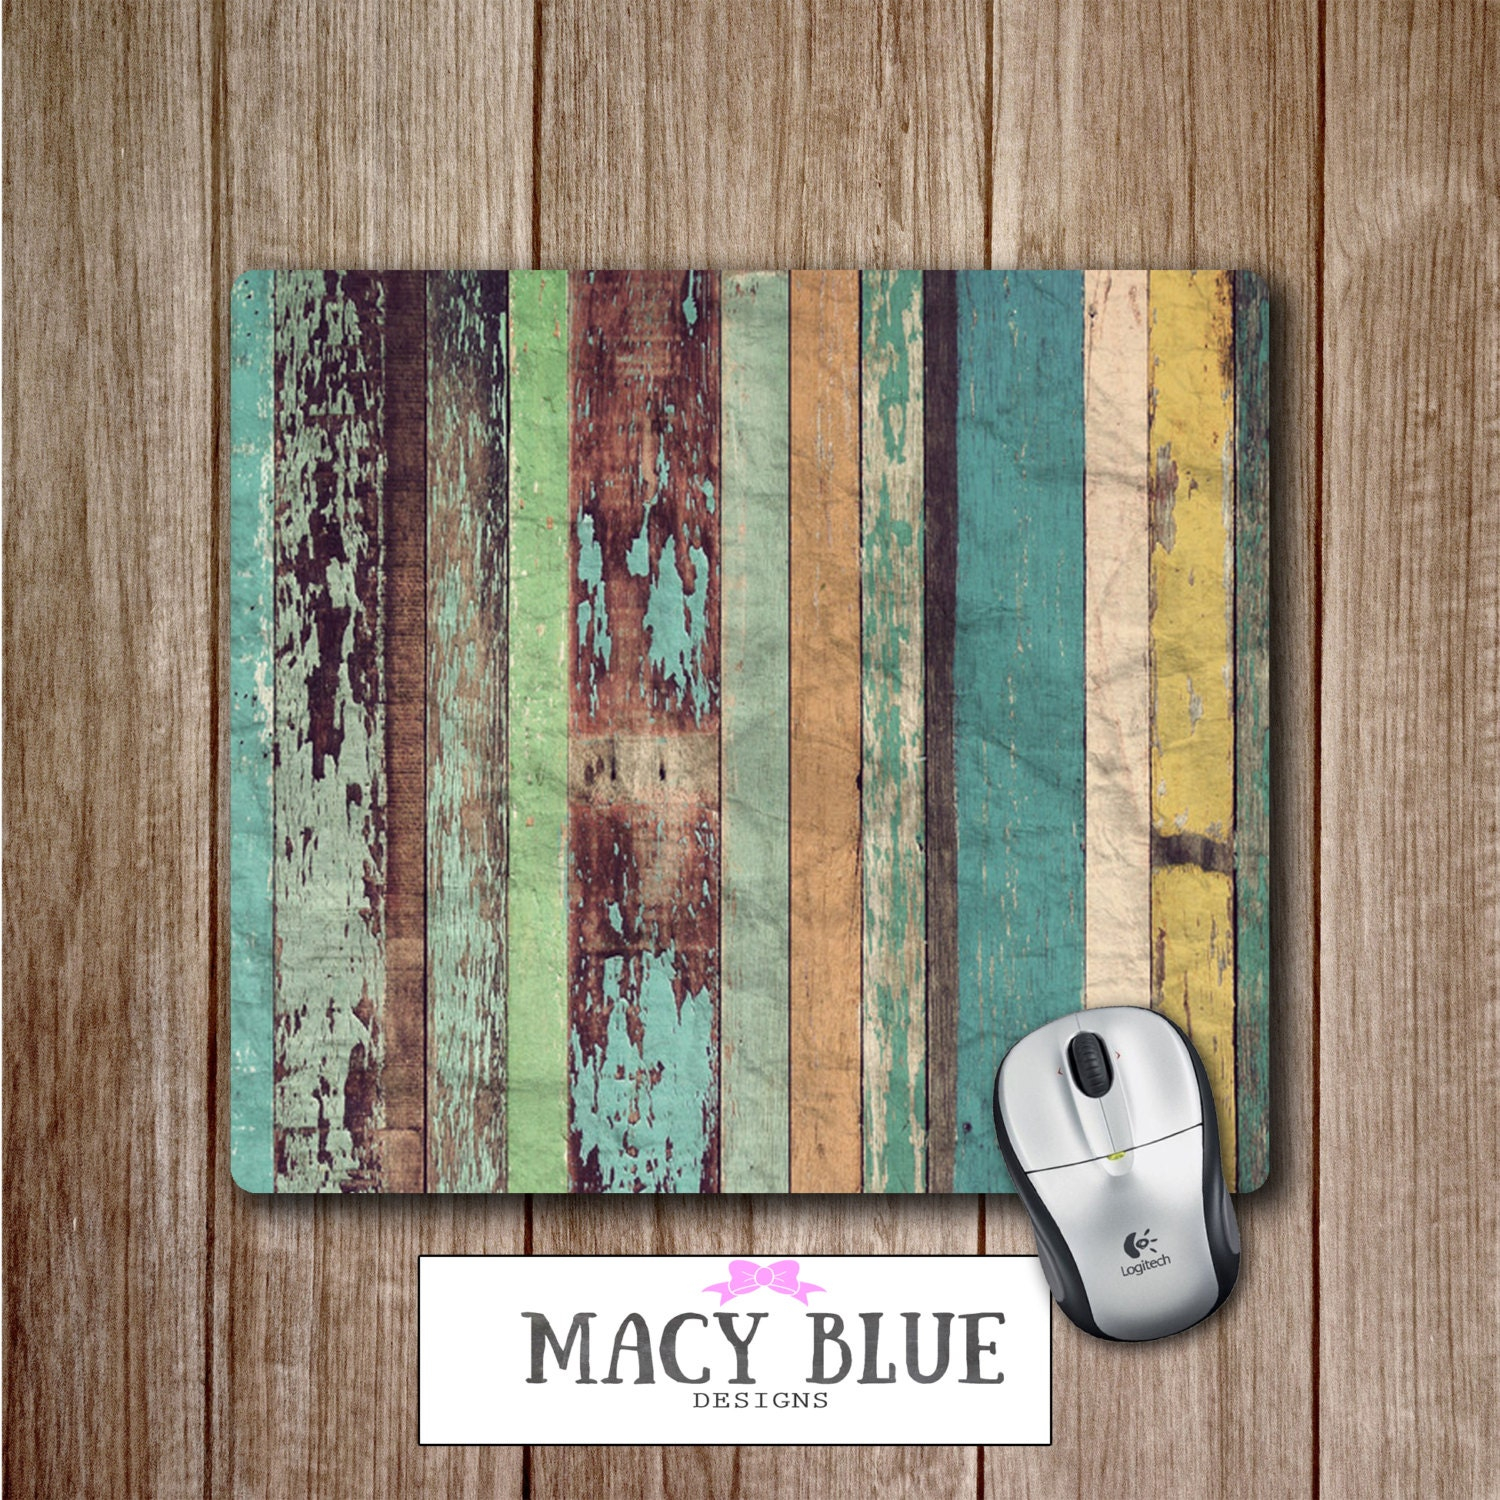 Wood Grain Printed on Mouse Pad, Office Accessories, Desk